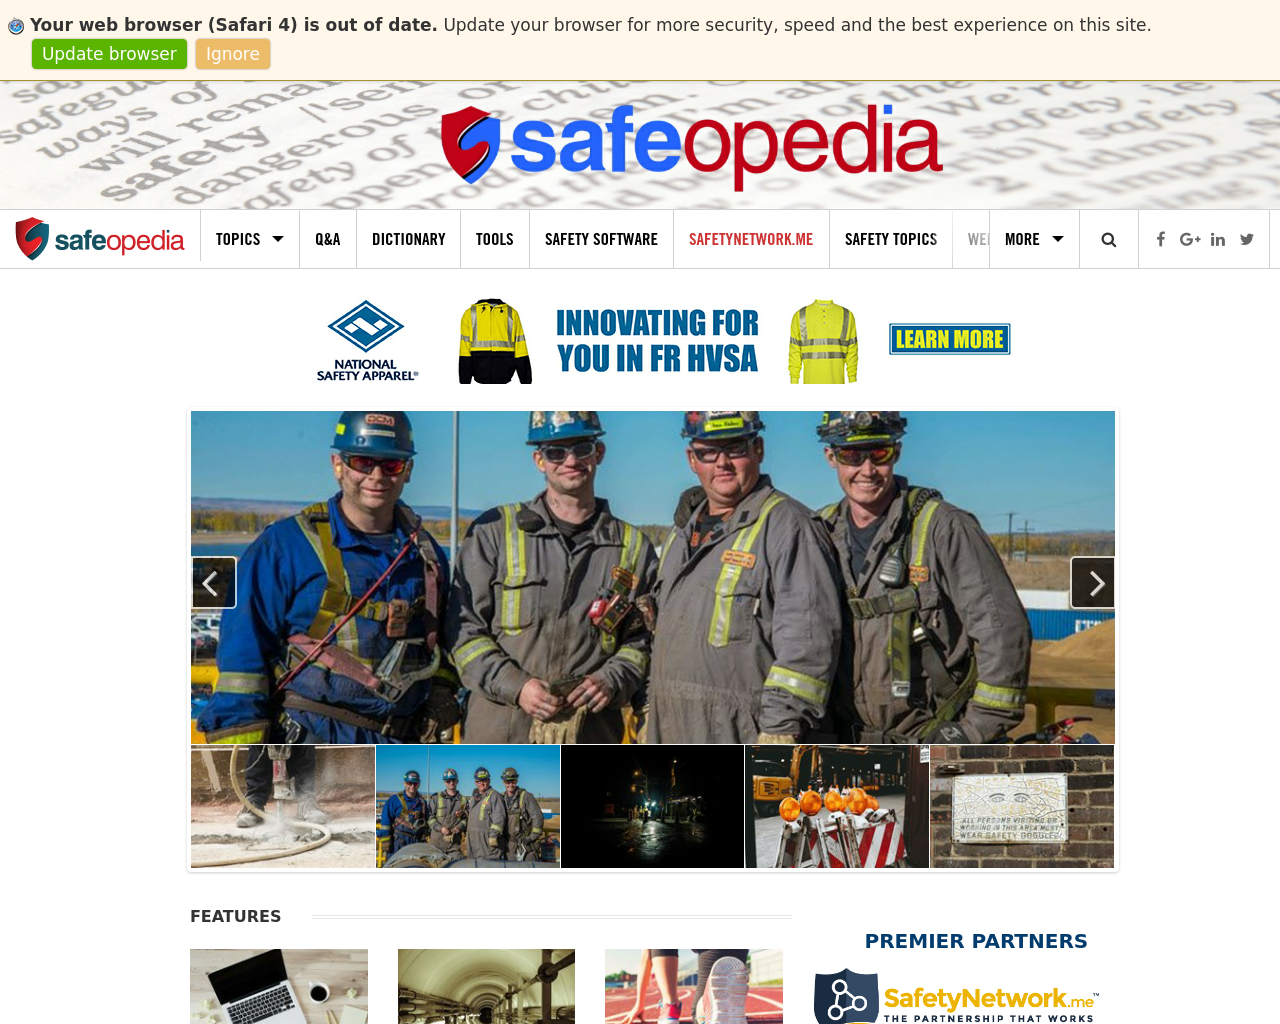 Safeopedia-Advertising-Reviews-Pricing